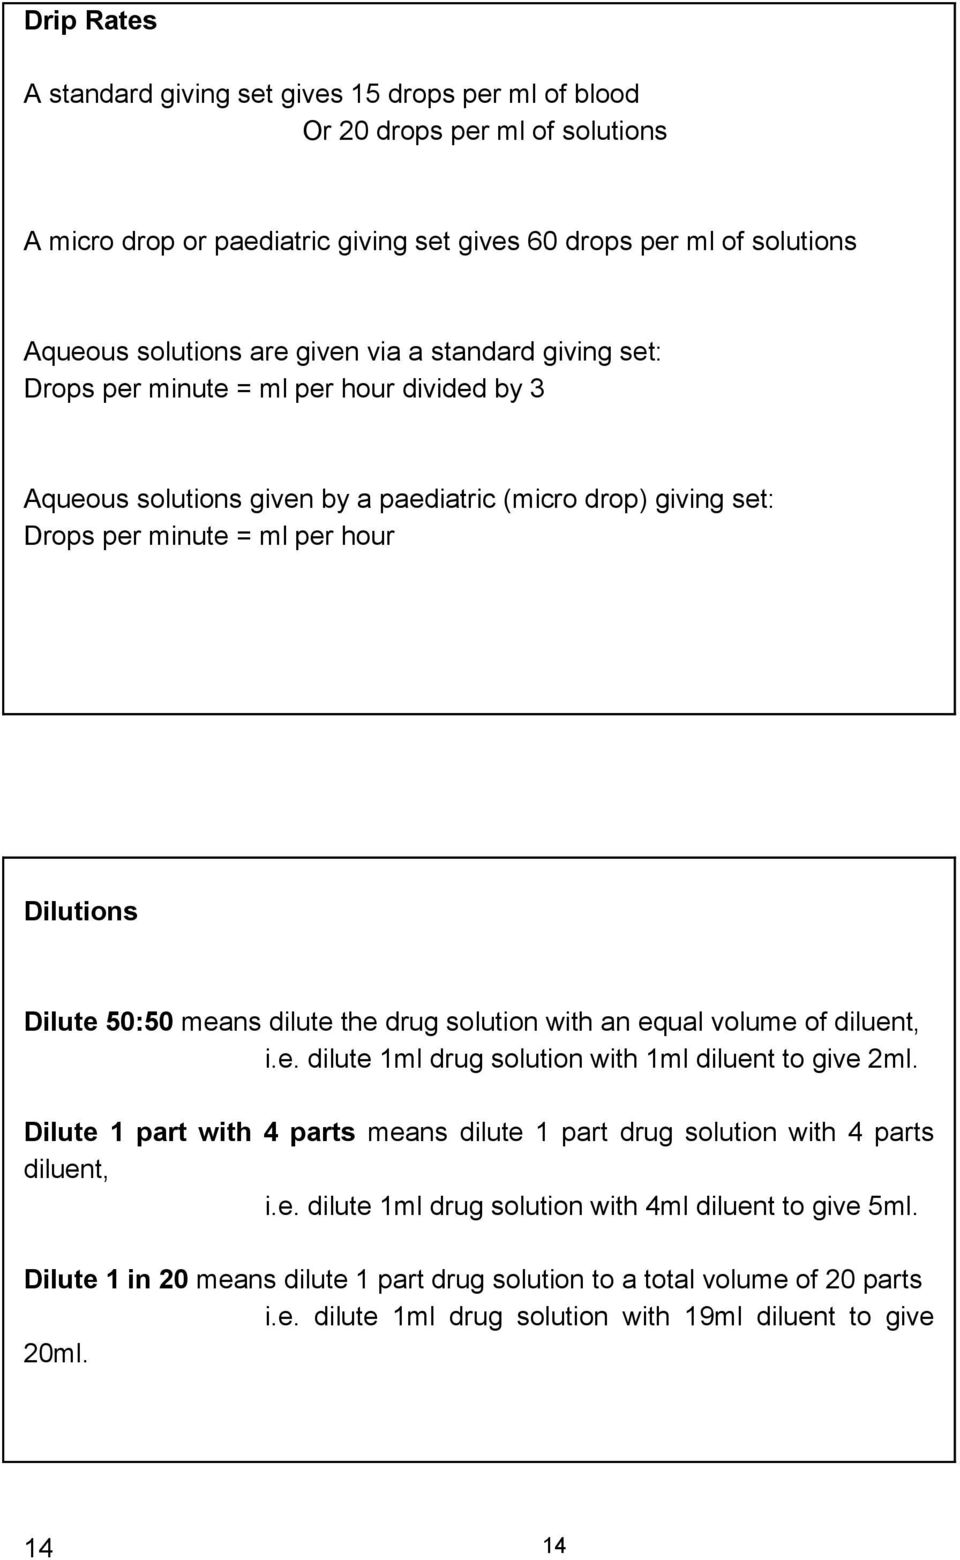 dilute the drug solution with an equal volume of diluent, i.e. dilute 1ml drug solution with 1ml diluent to give 2ml.